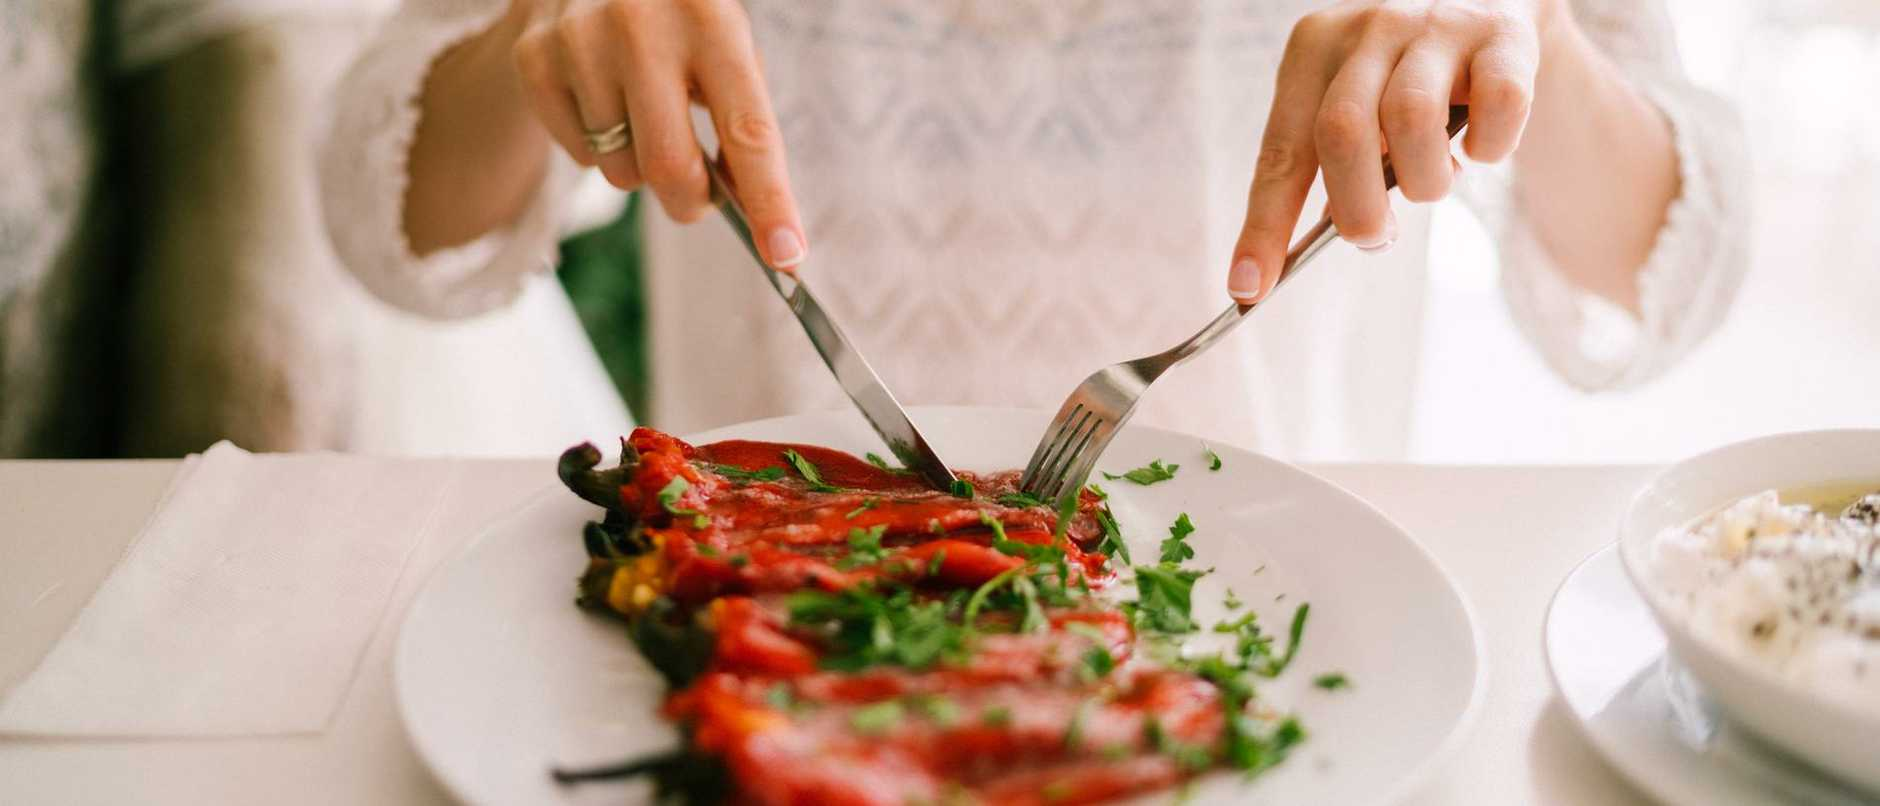 keto diet is the worst diet for healthy eating, according to new rankings